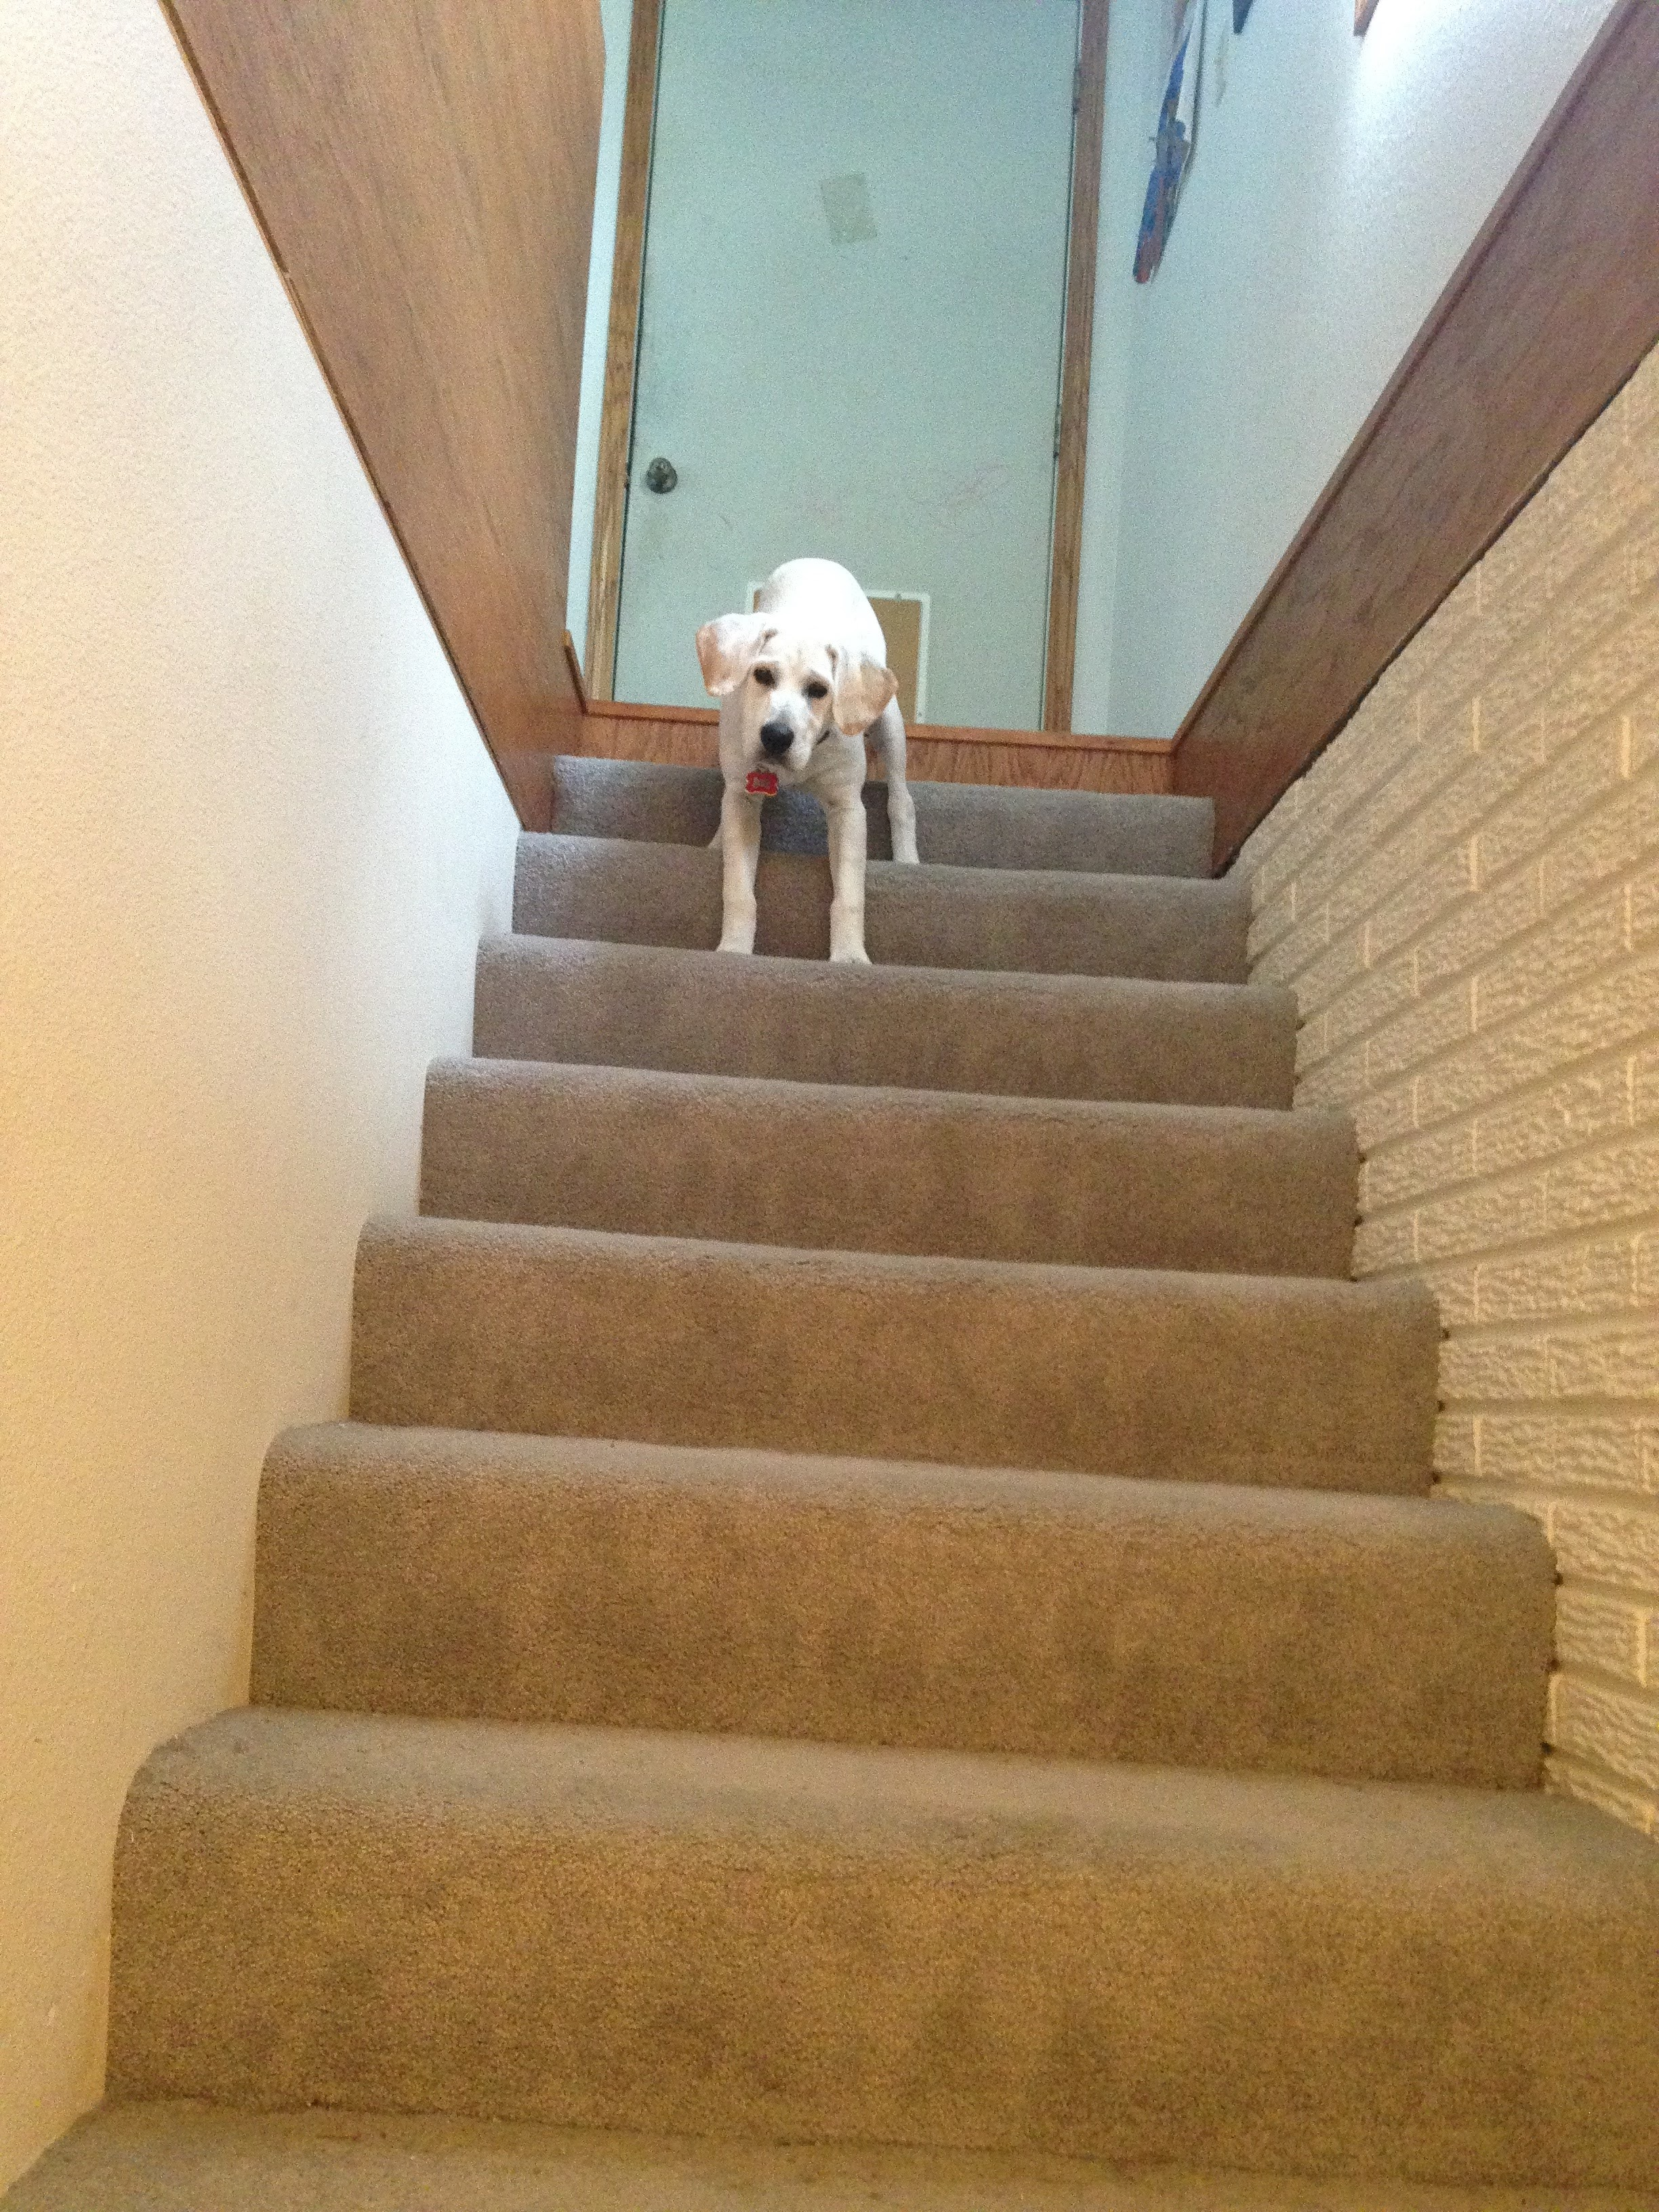 This was when he was learning to go down the stairs. Mom would not approve of that.